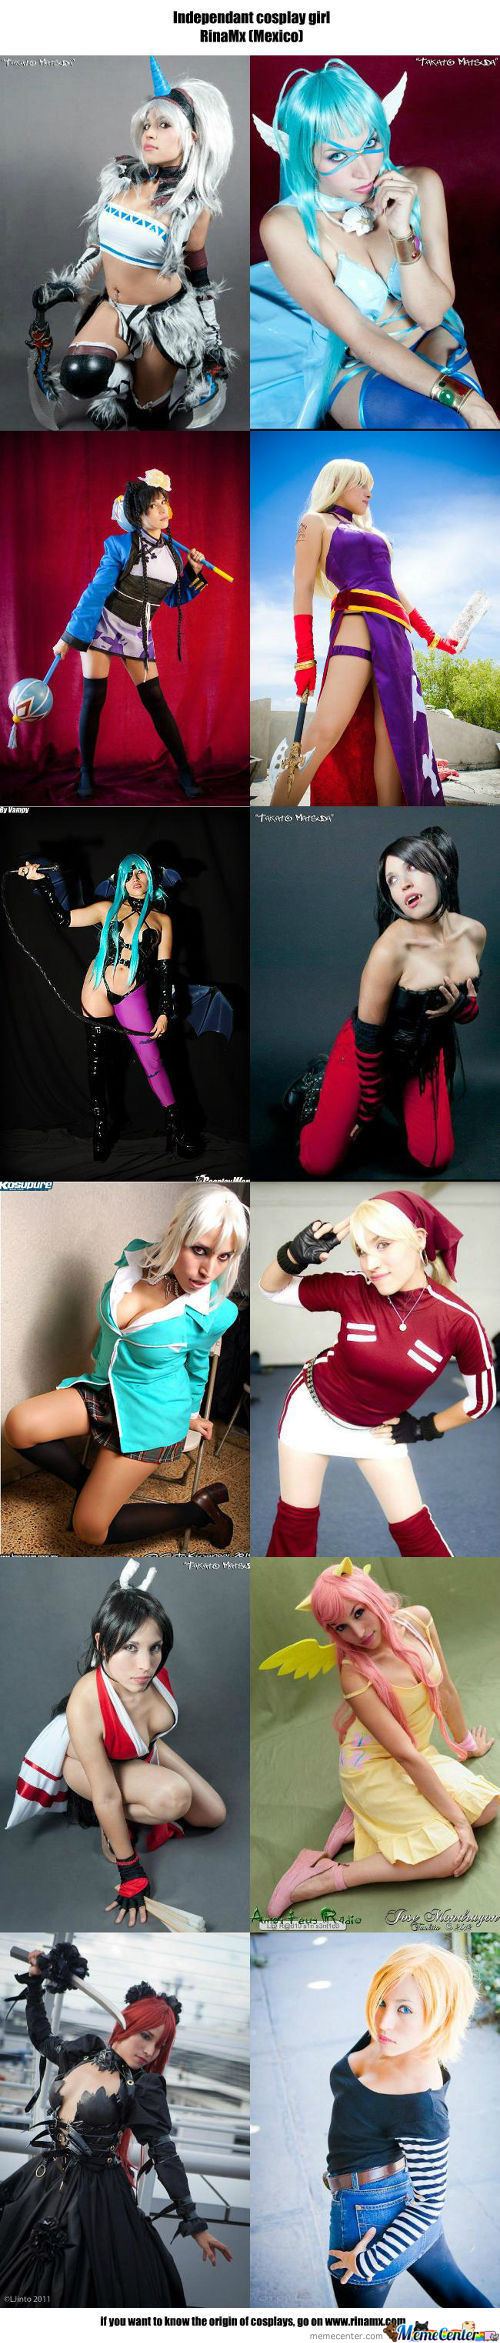 Cosplay Girl 85 : Rinamx (Mexico)